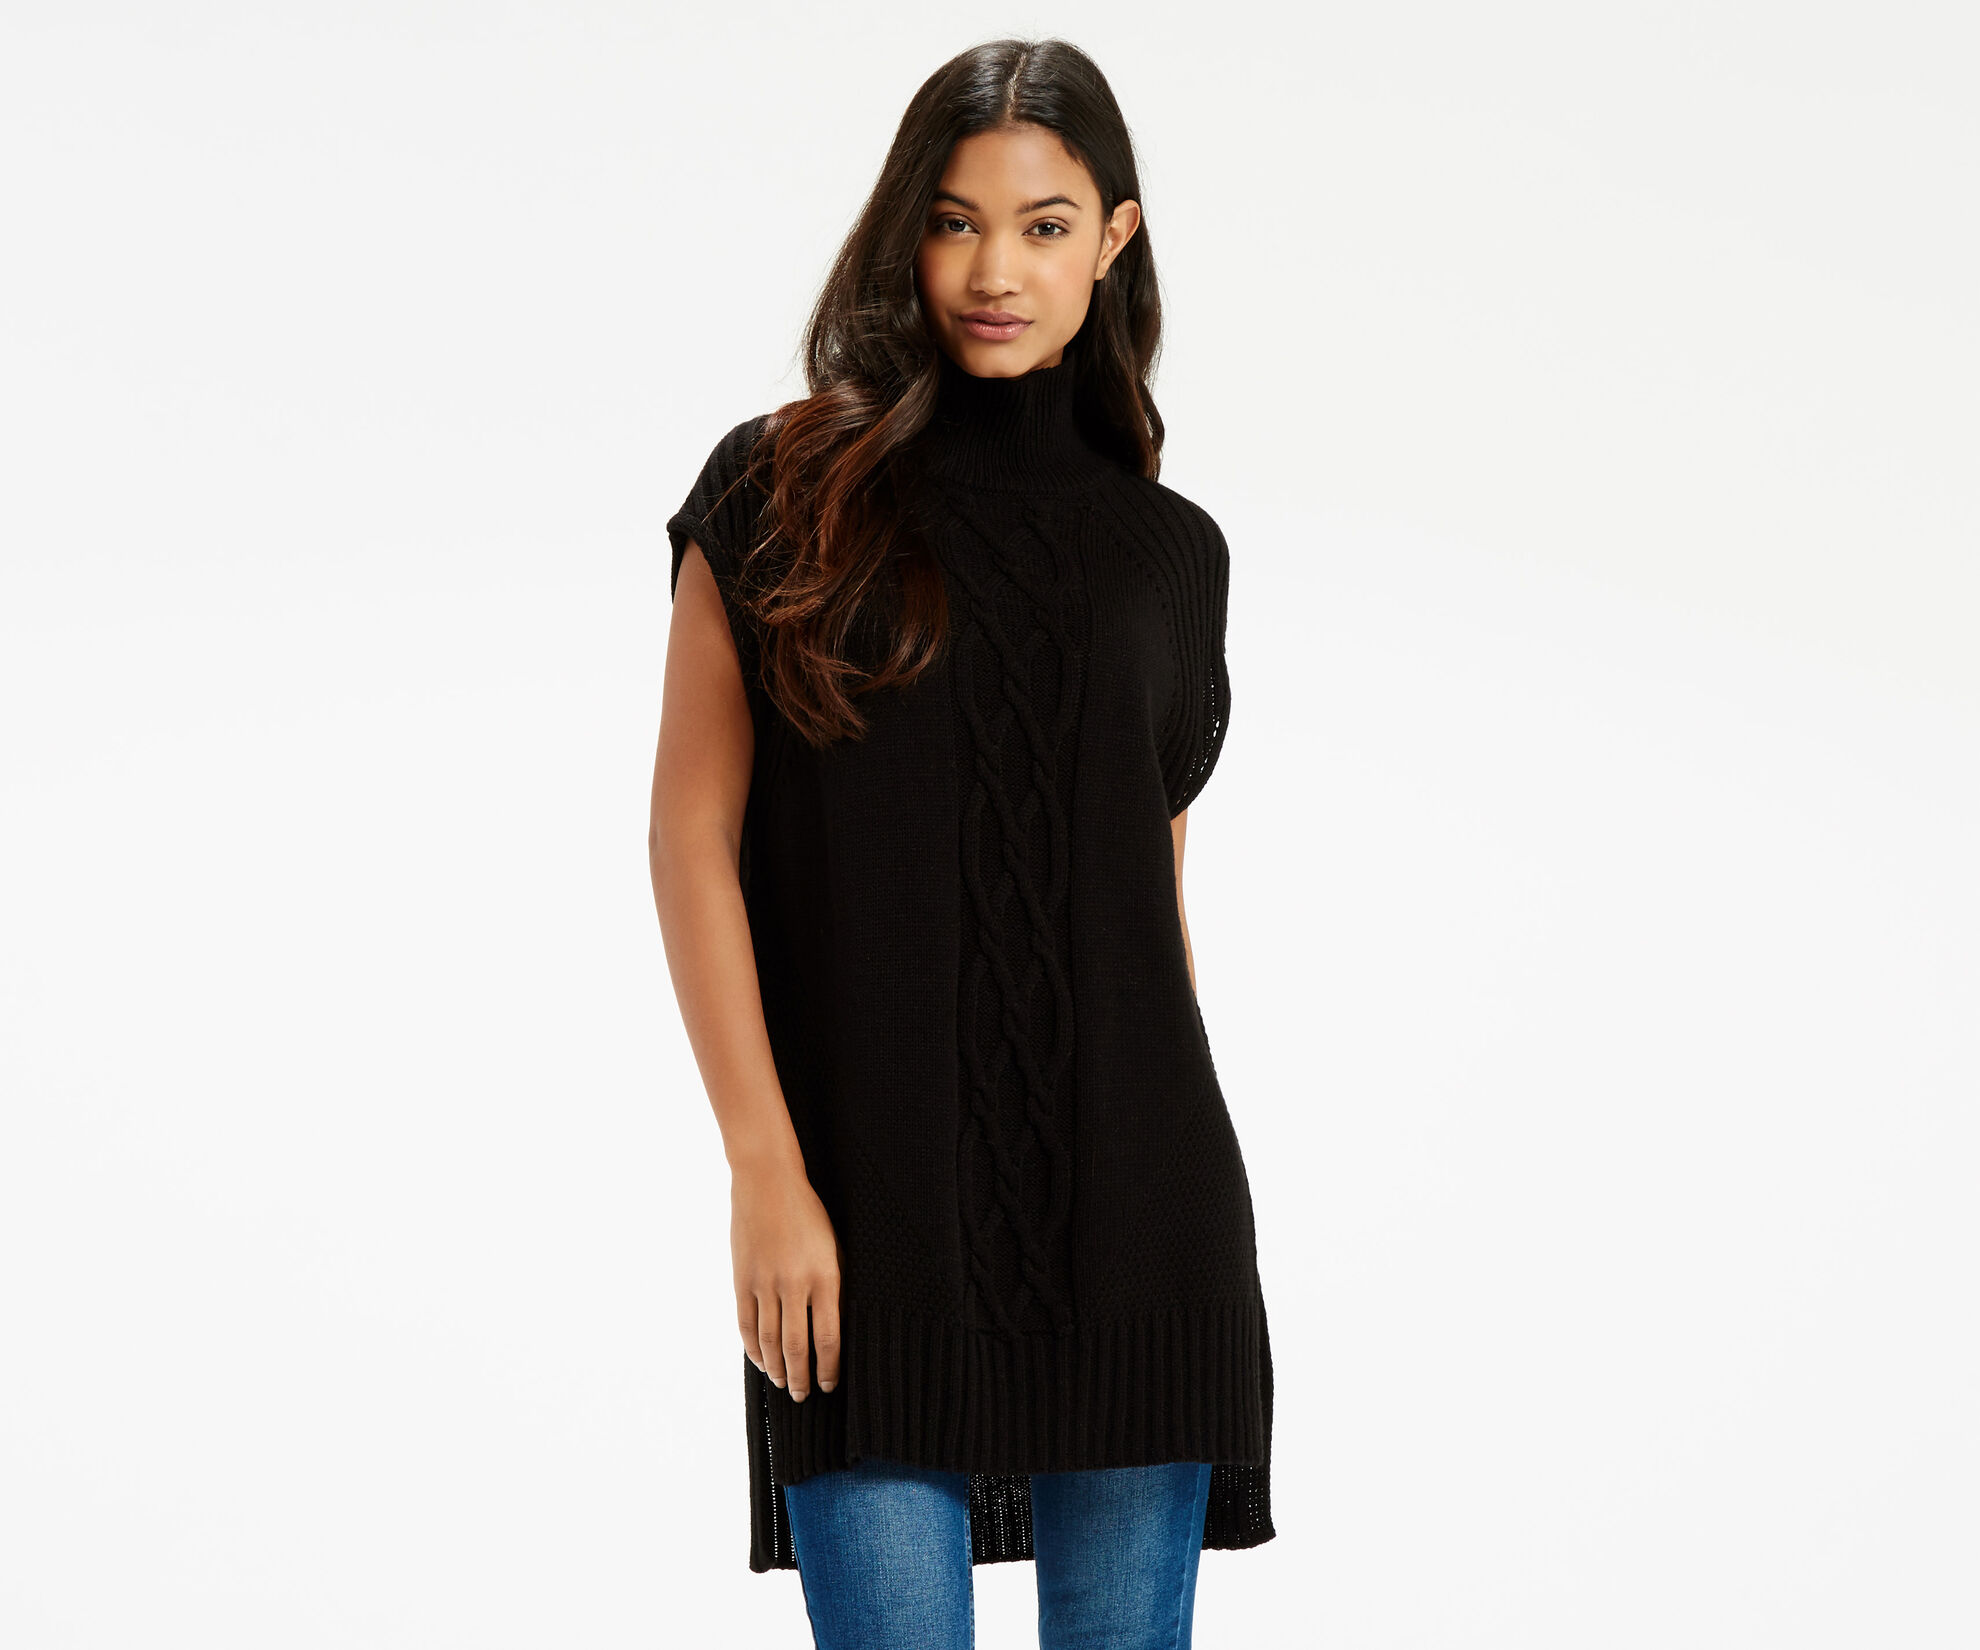 Oasis, Longline Knitted Tunic Black 1